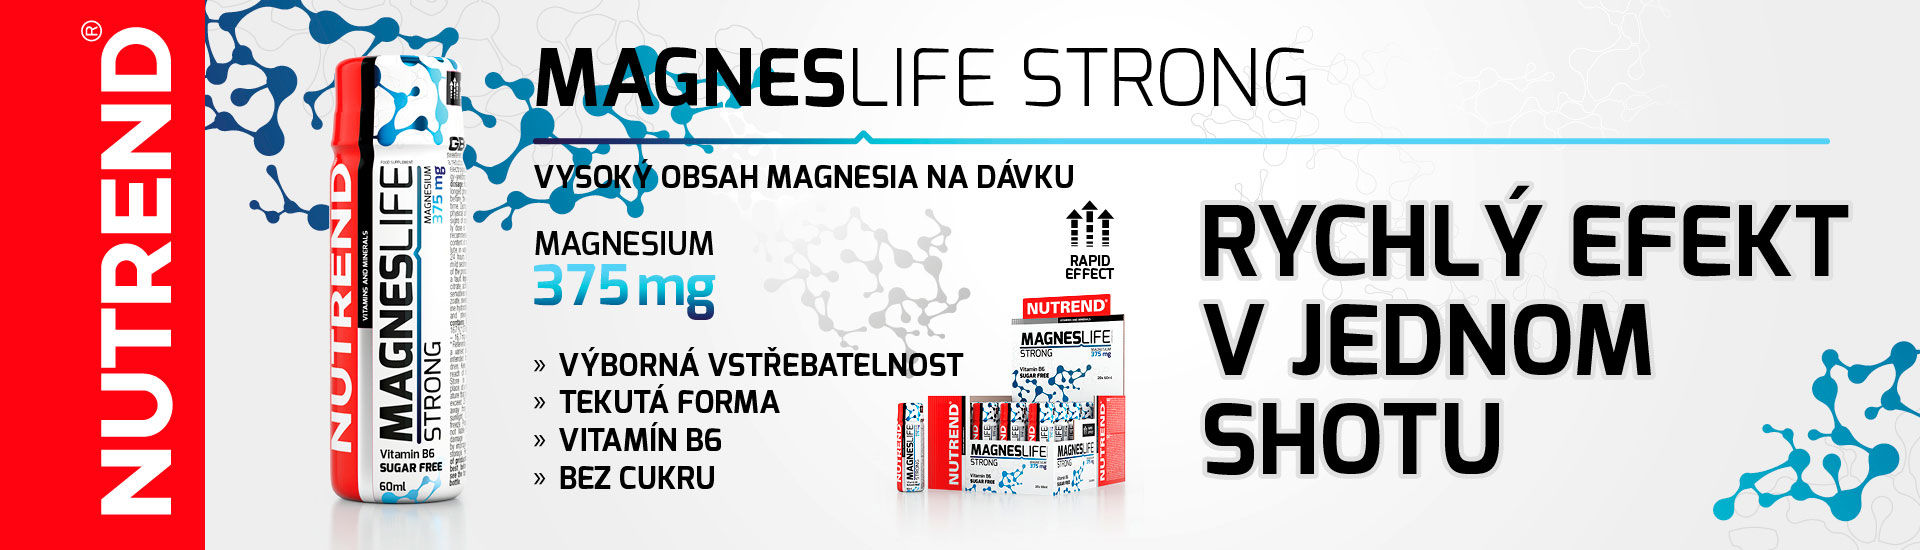 magneslife-strong-1920x550